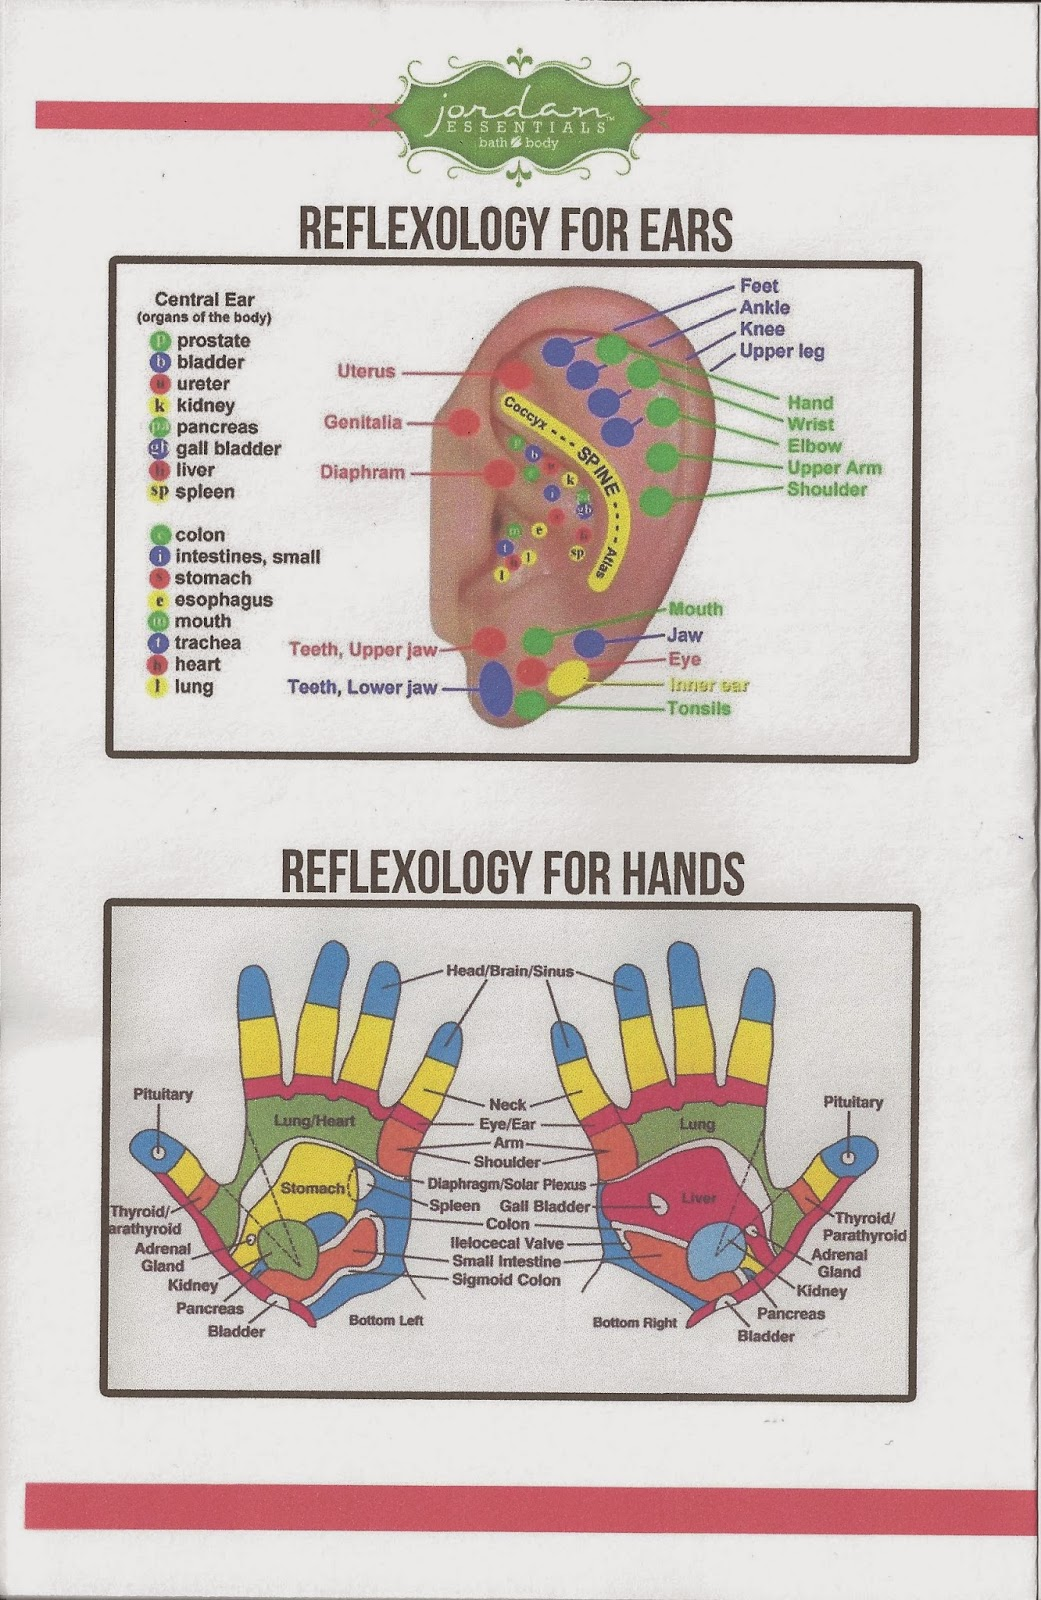 Face Reflexology Acne Reflexology